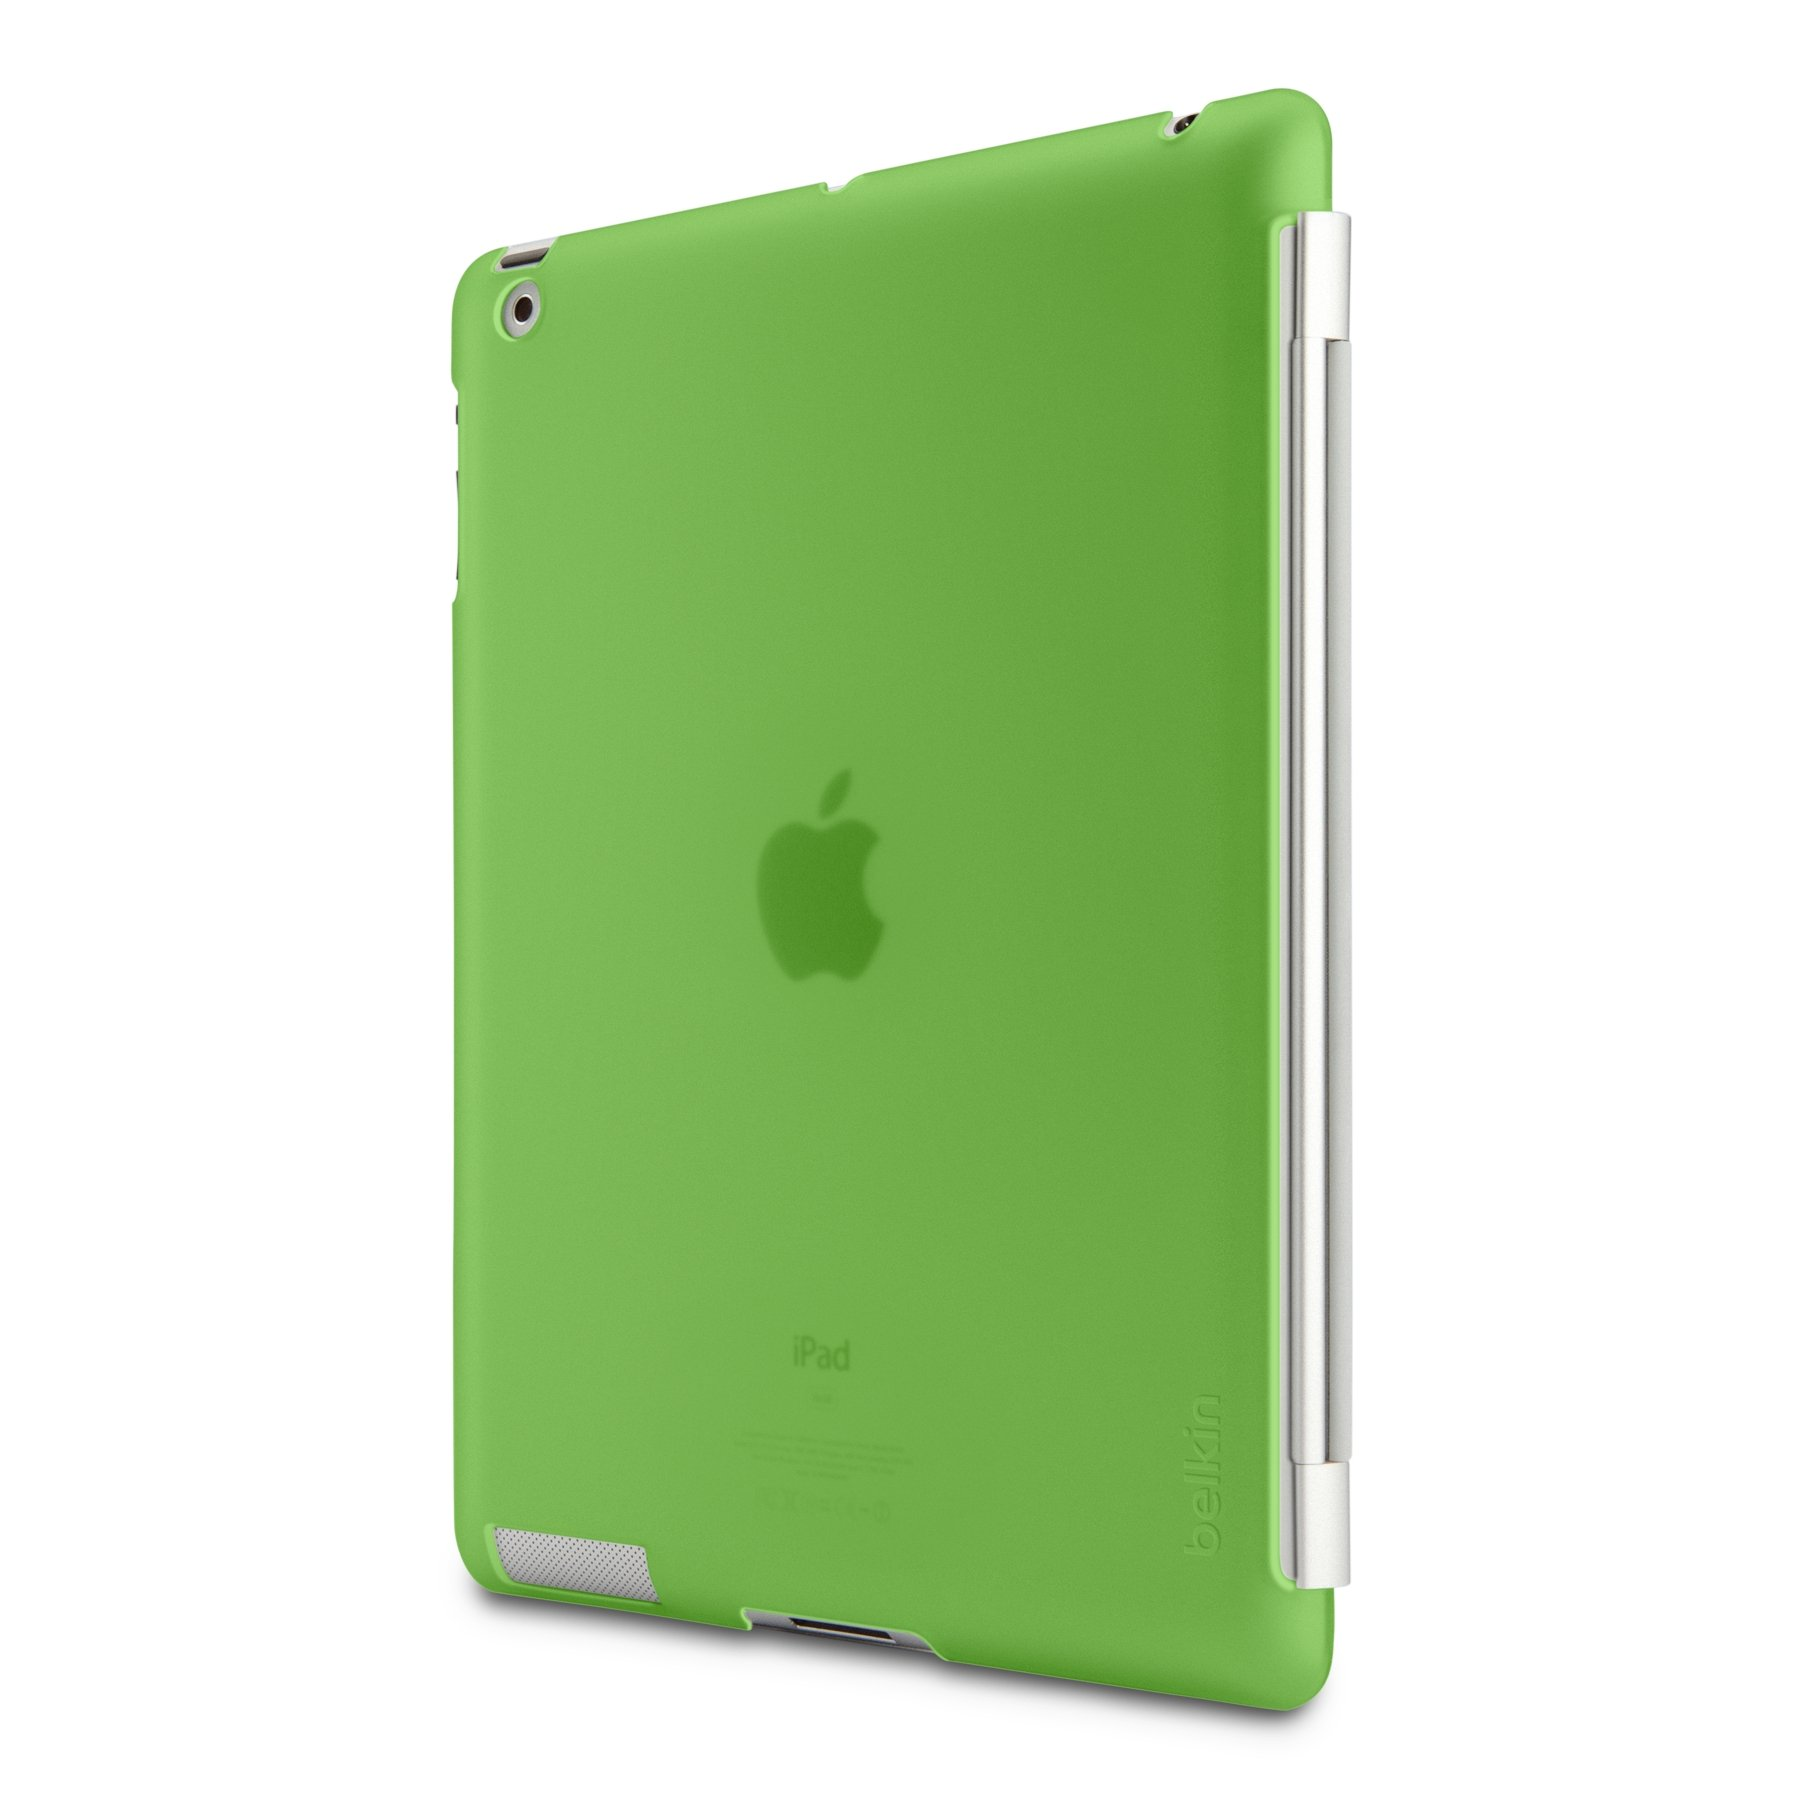 Belkin Snap Shield Case for the Apple iPad 3rd and 4th Generation (Green)